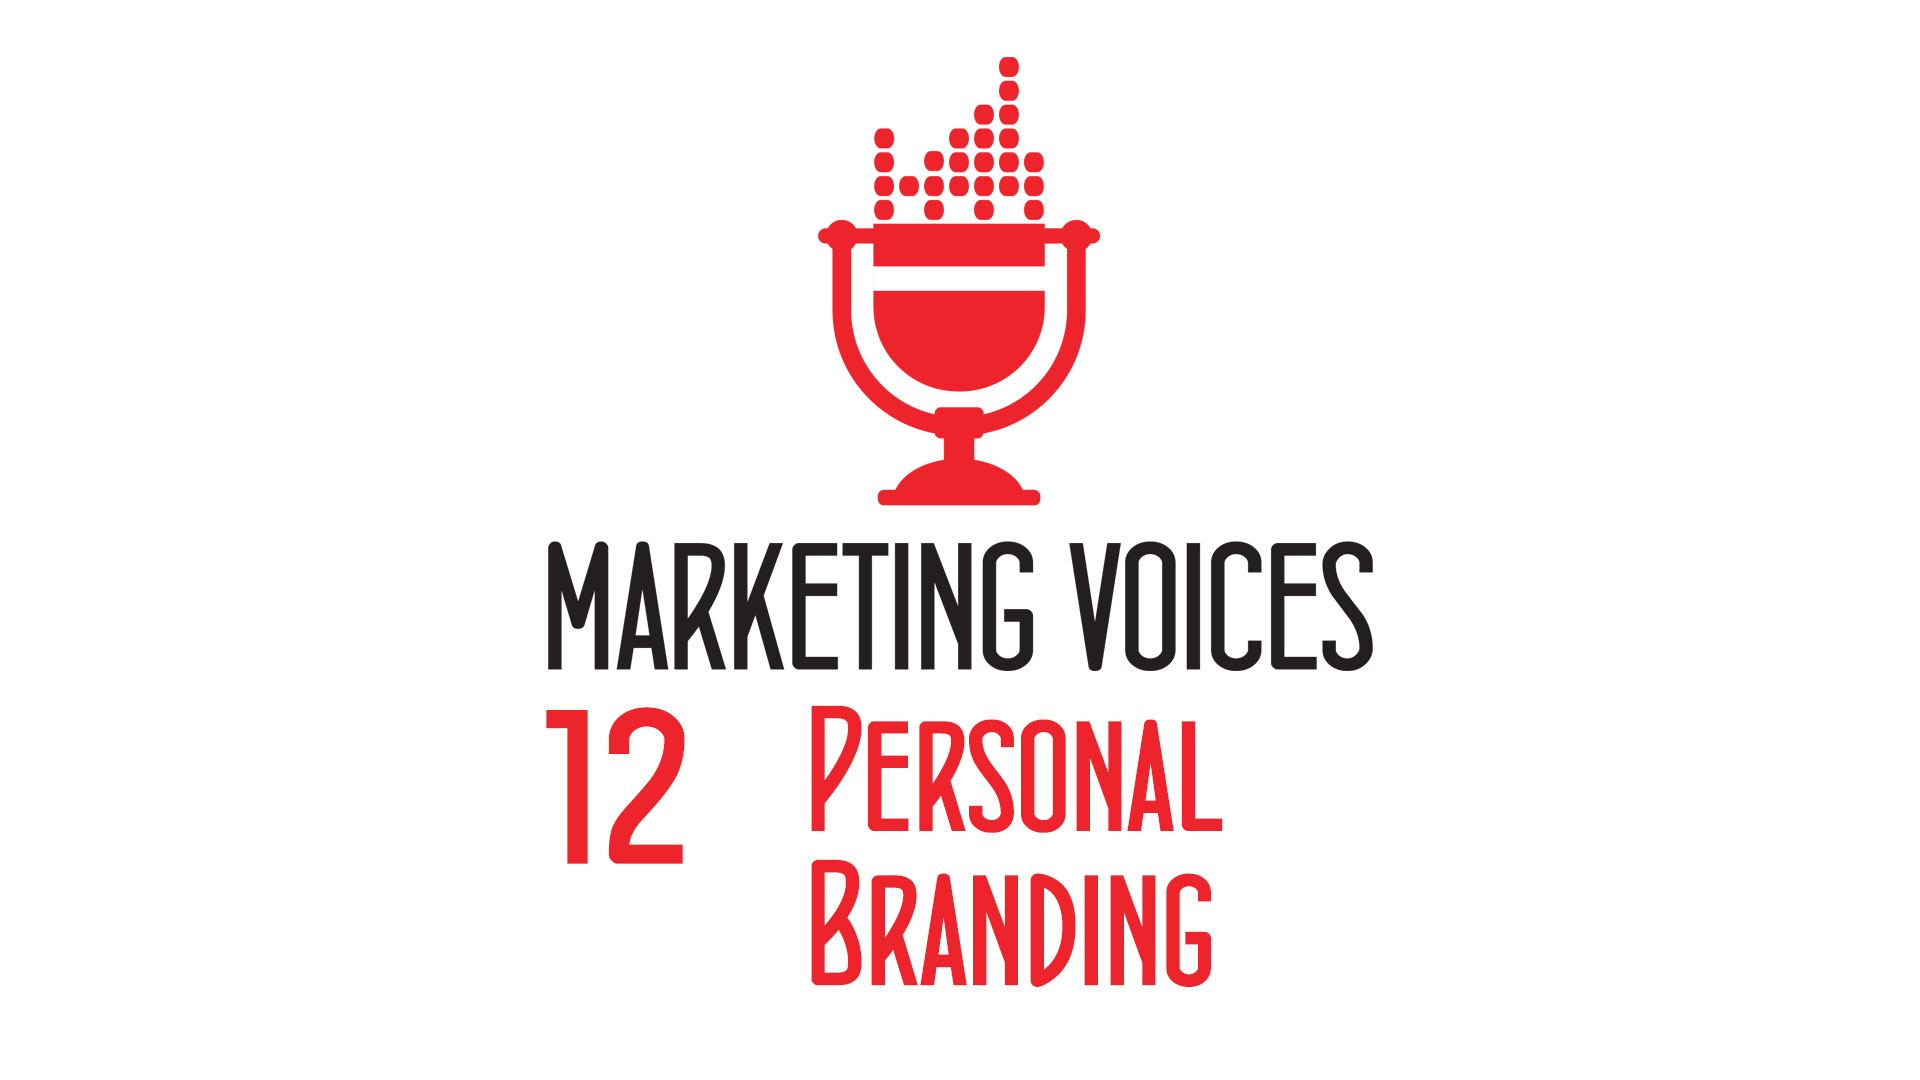 personal branding marketing voices podcast